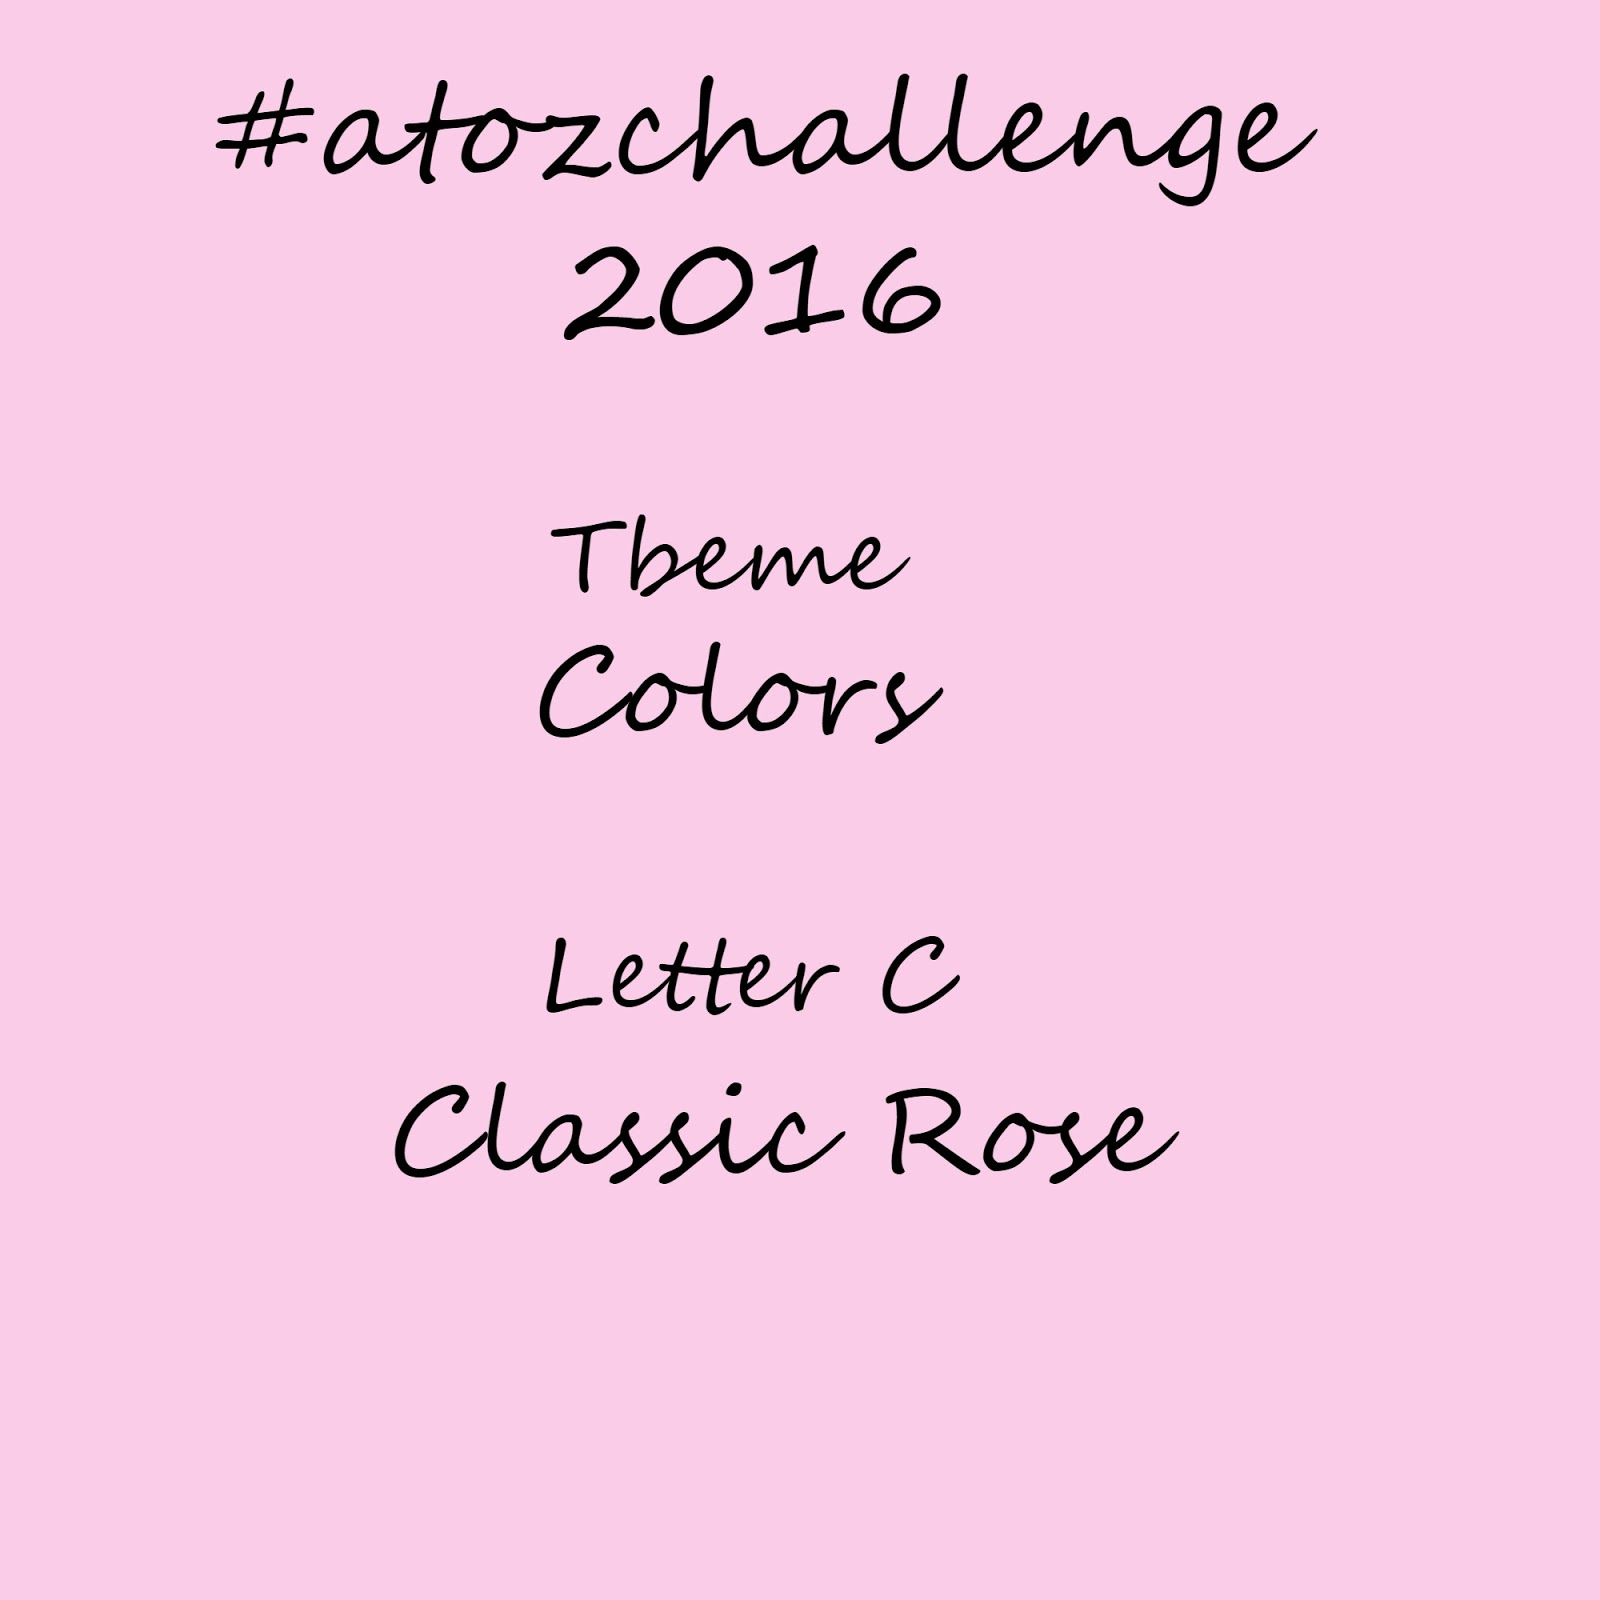 atozchallenge 2016//C is for Classic Rose - laceituplove